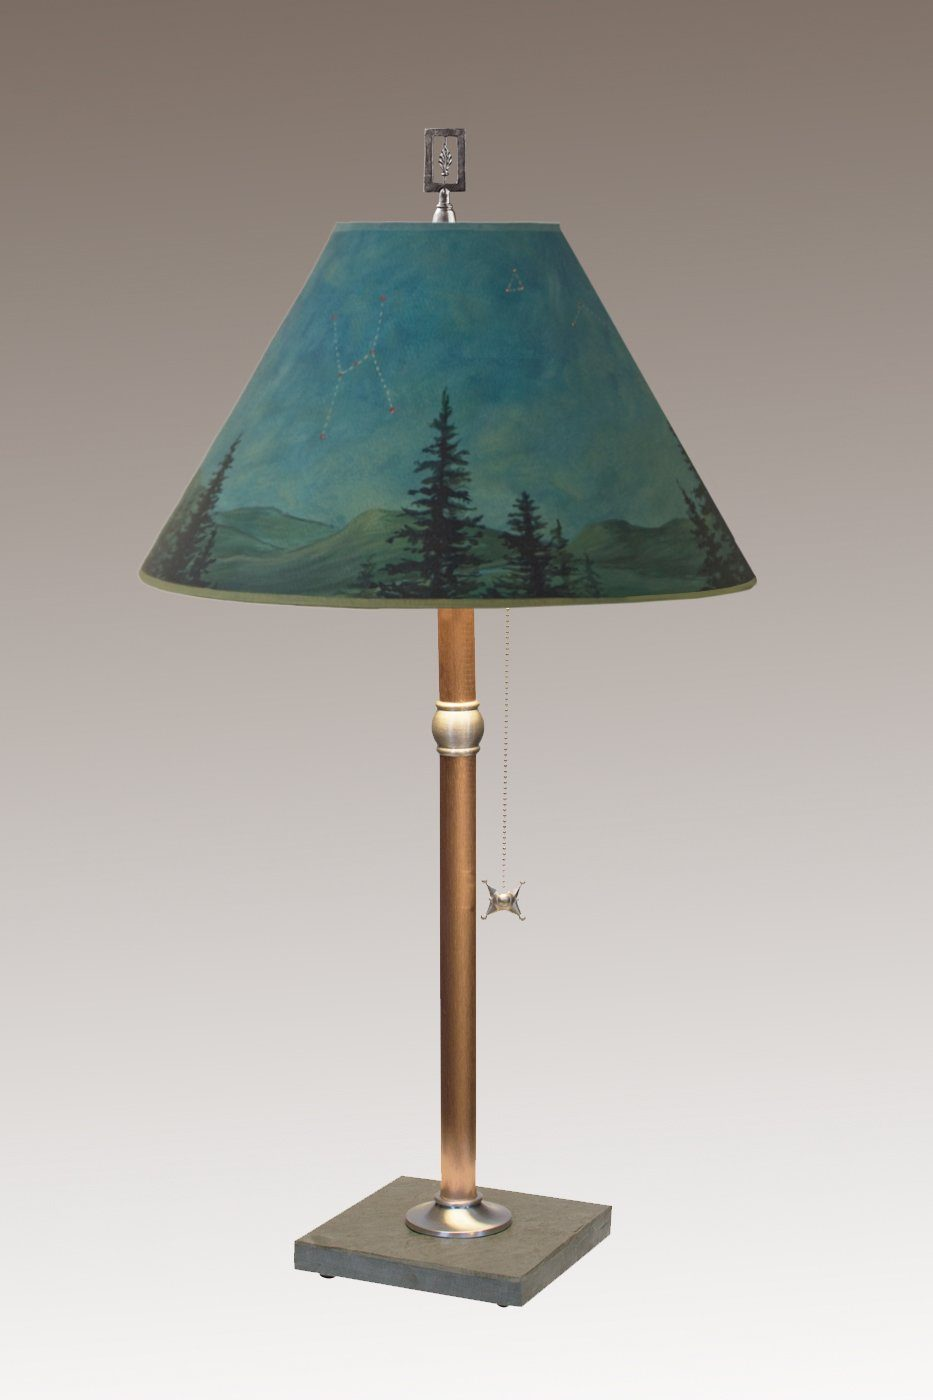 Copper Table Lamp on Vermont Slate with Medium Conical Shade in Midnight